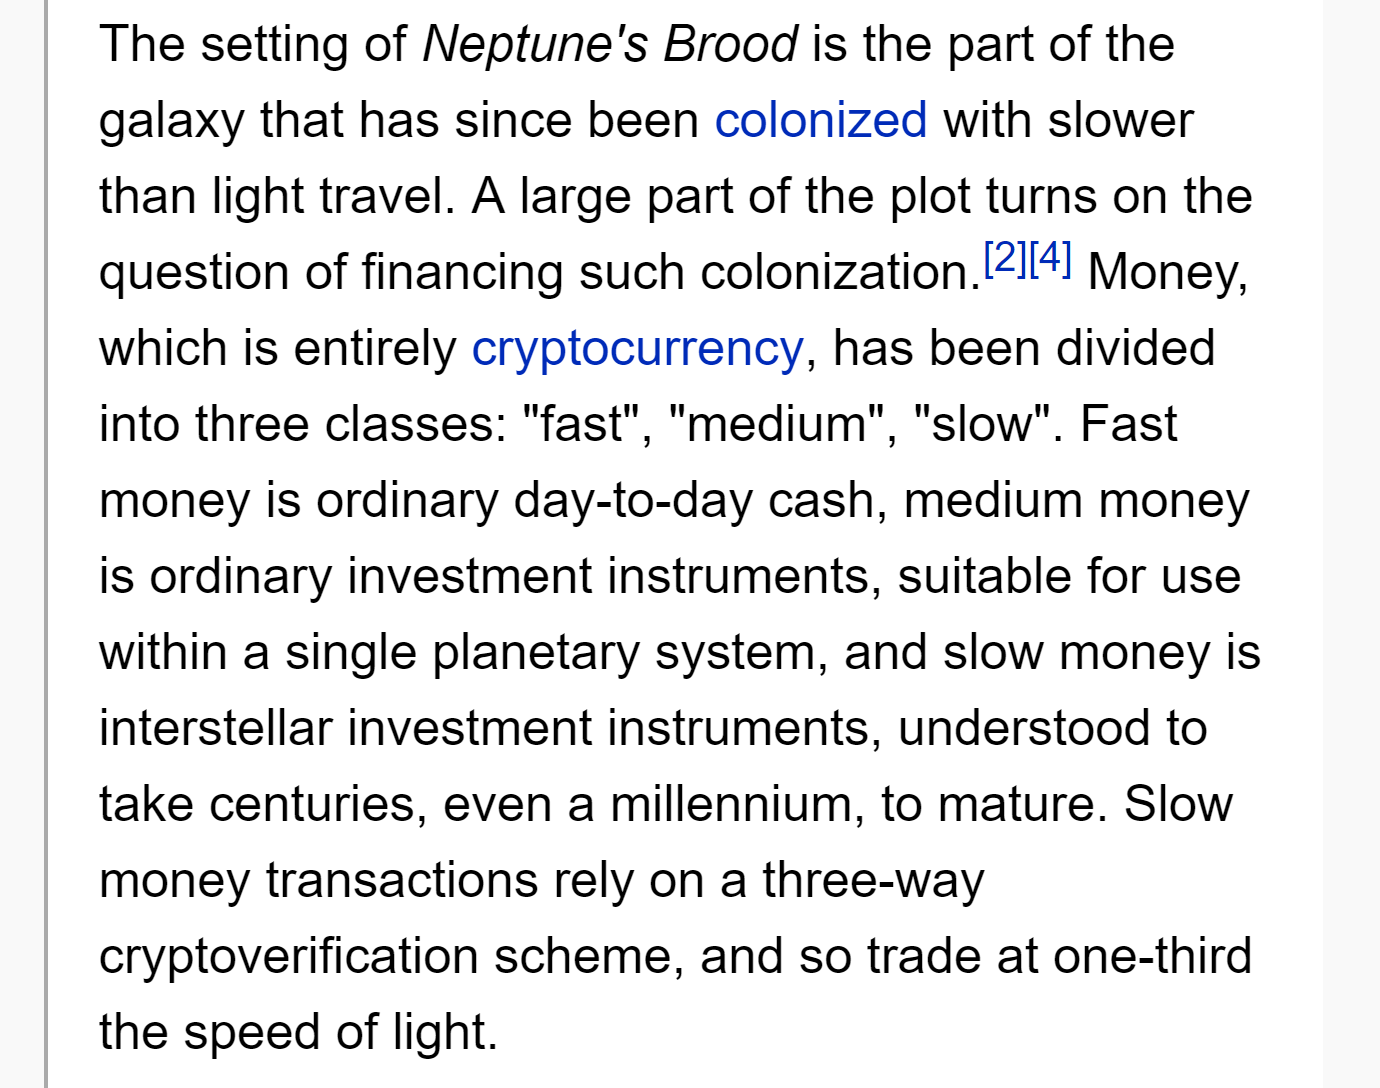 FireShot Capture 70 - Neptune's Brood - Wikipedia_ - https___en.wikipedia.org_wiki_Neptune's_Brood